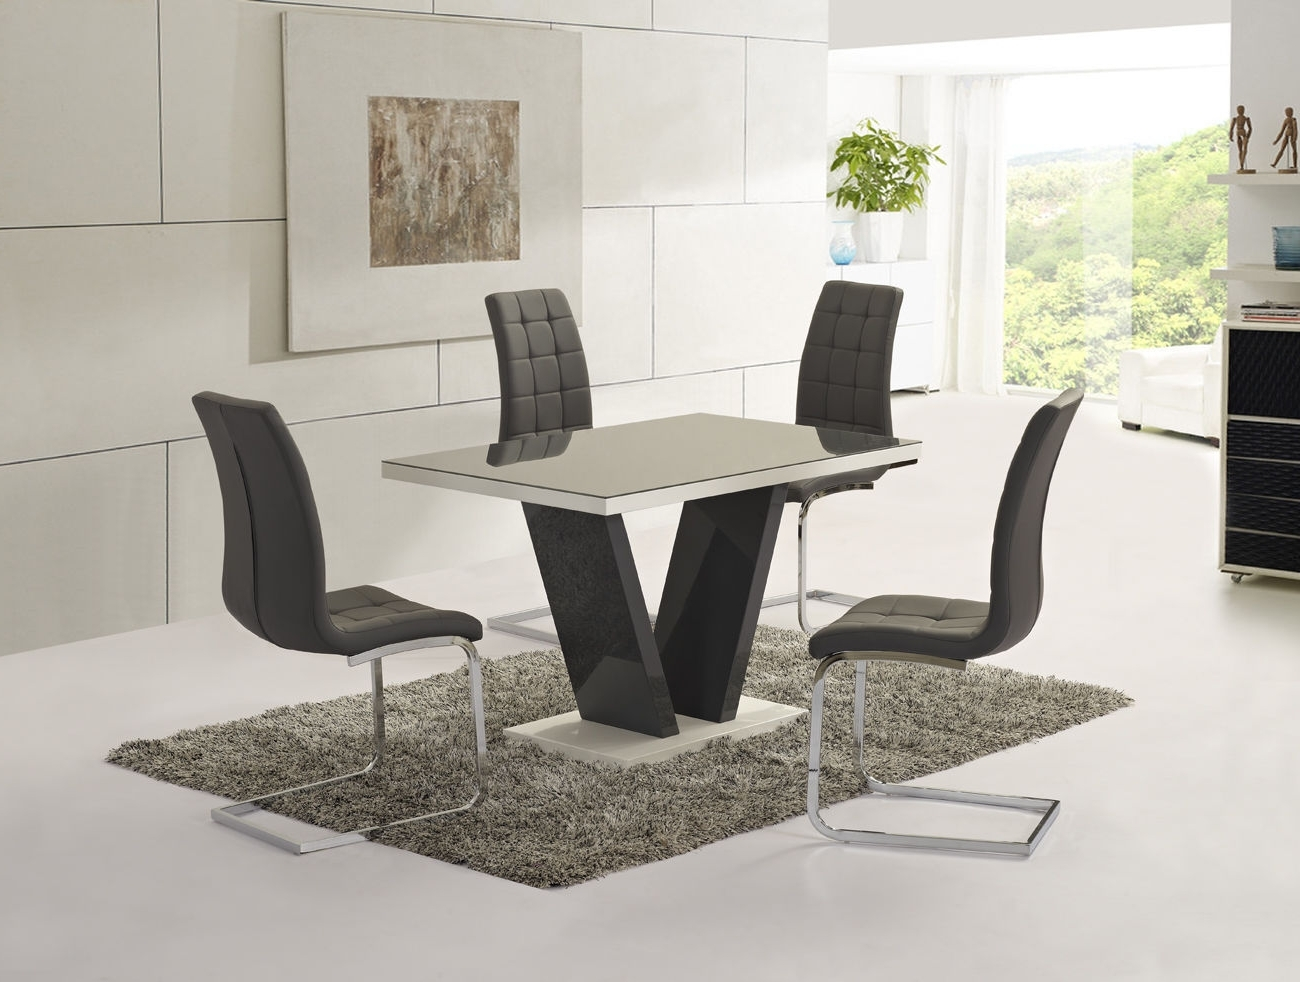 Preferred Gloss Dining Tables And Chairs Intended For Ga Vico Gloss Grey Glass Top Designer 160Cm Dining Set – 4 6 Grey (View 3 of 25)